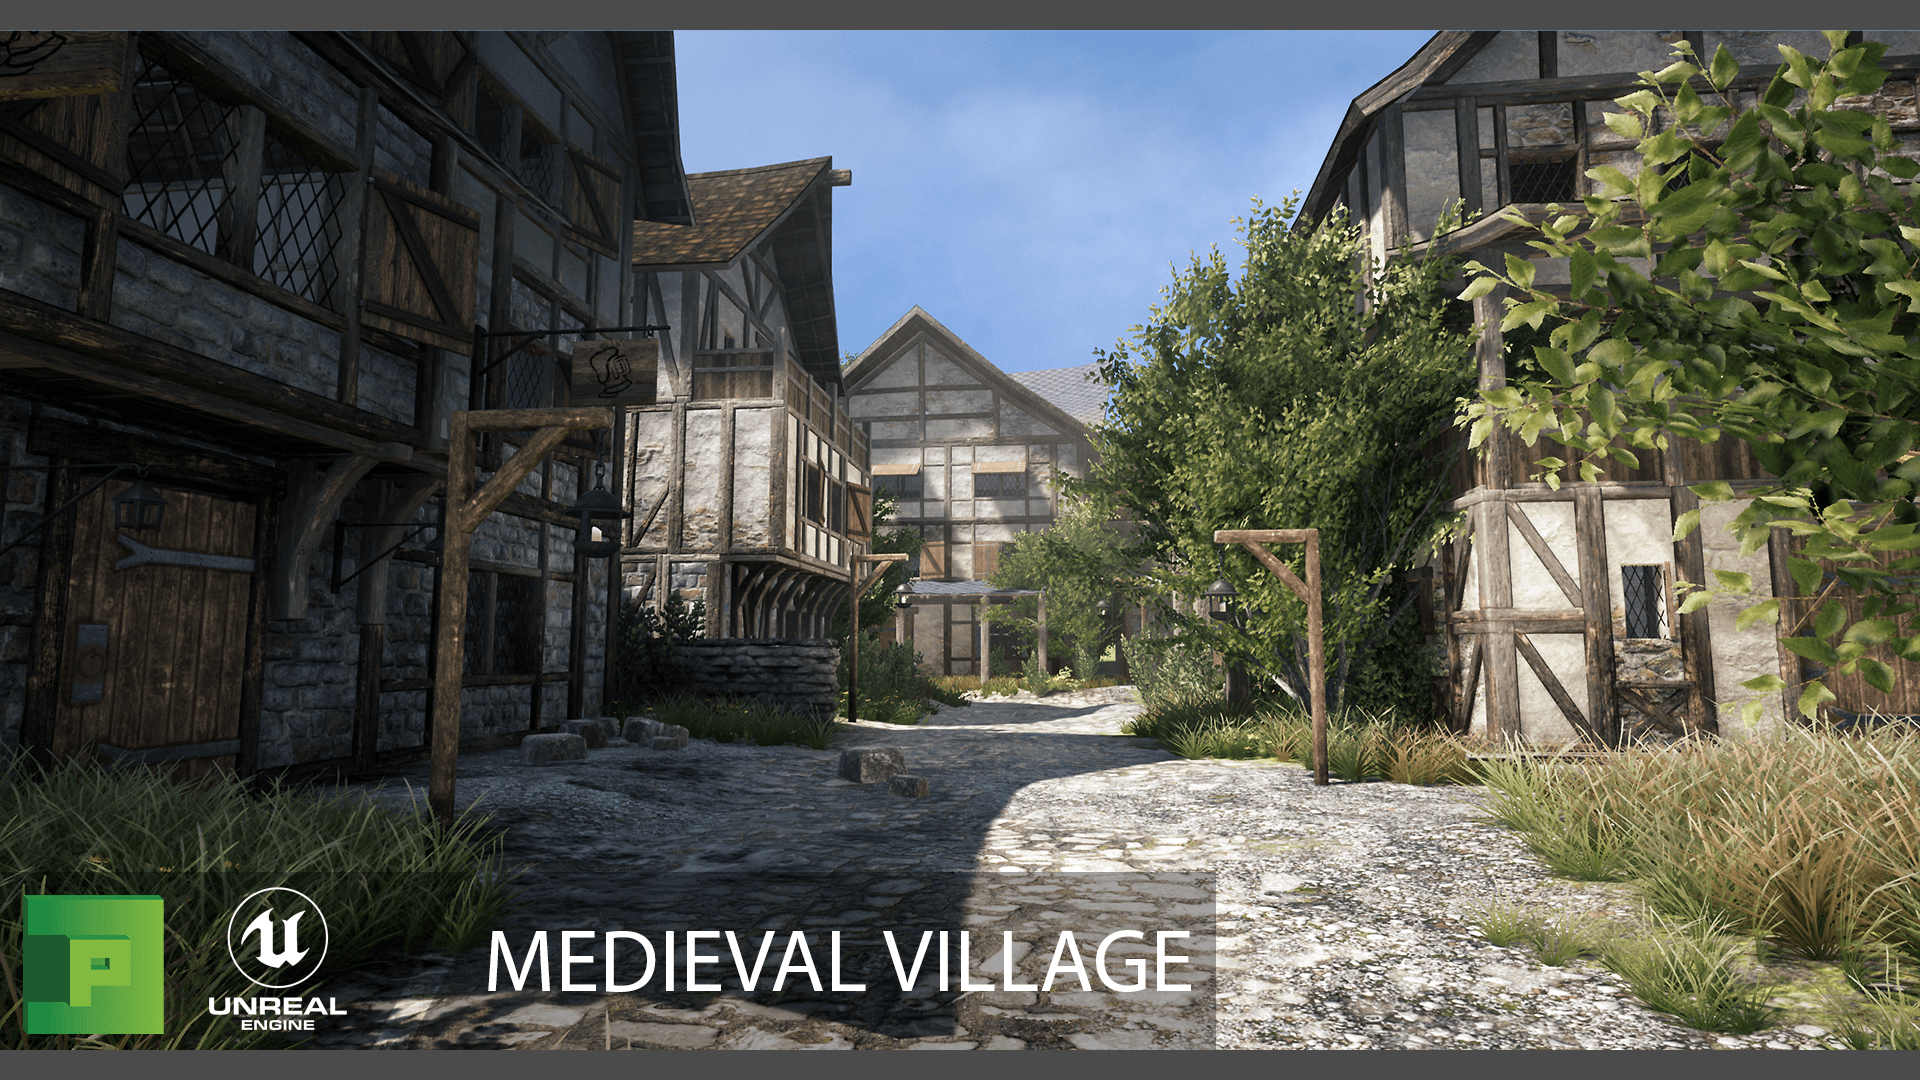 Medieval Village By Polypixel In Environments Ue4